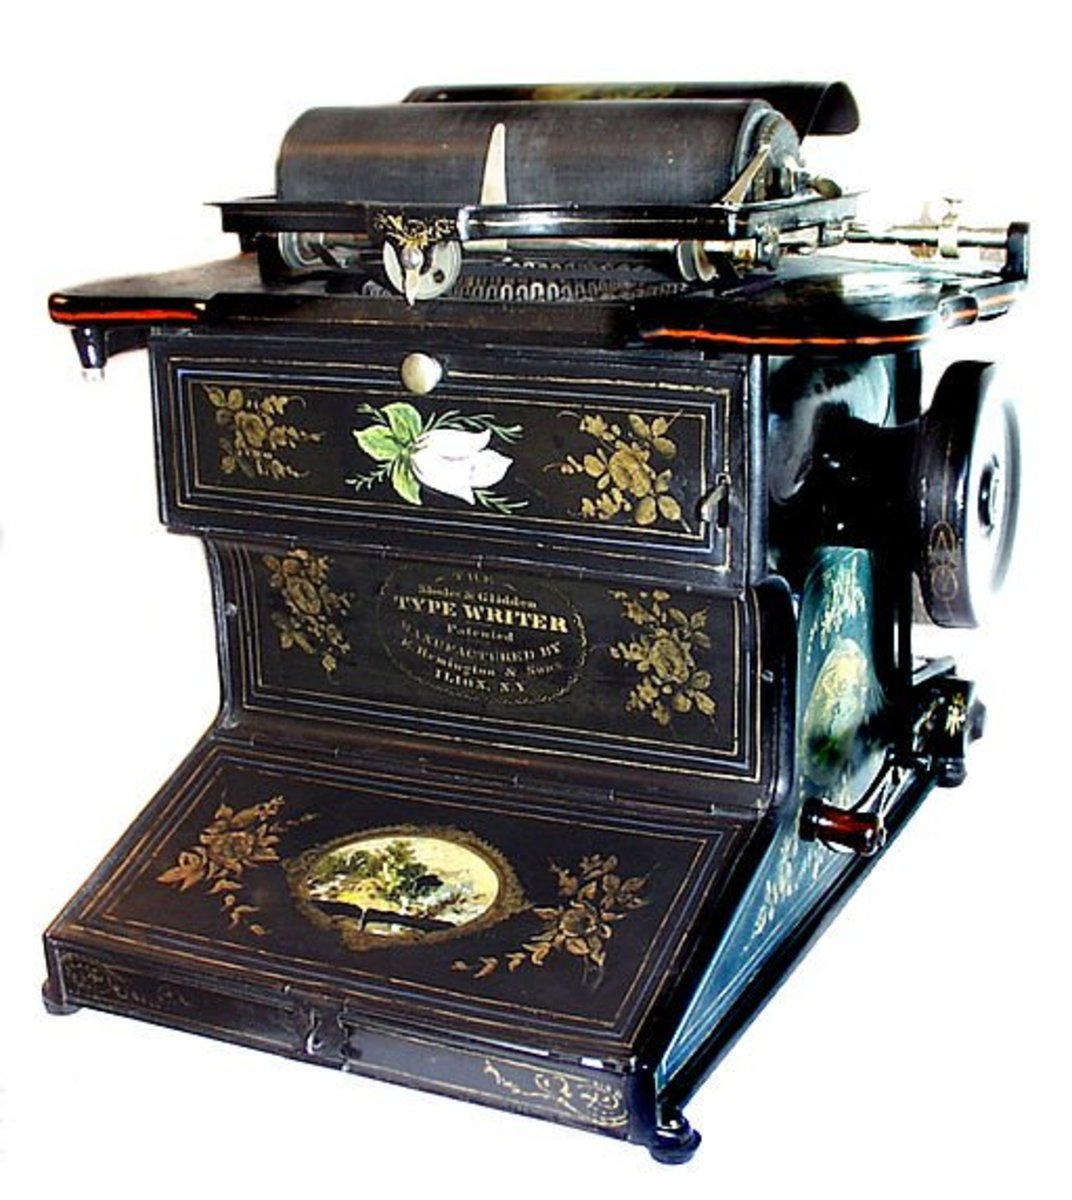 Sholes & Glidden Type-Writer, invented by Christopher Latham Sholes, Carlos Glidden, and Samuel W. Soule in 1868, and manufactured by Remington & Sons, Ilion, New York, USA, between 1874 and 1878.